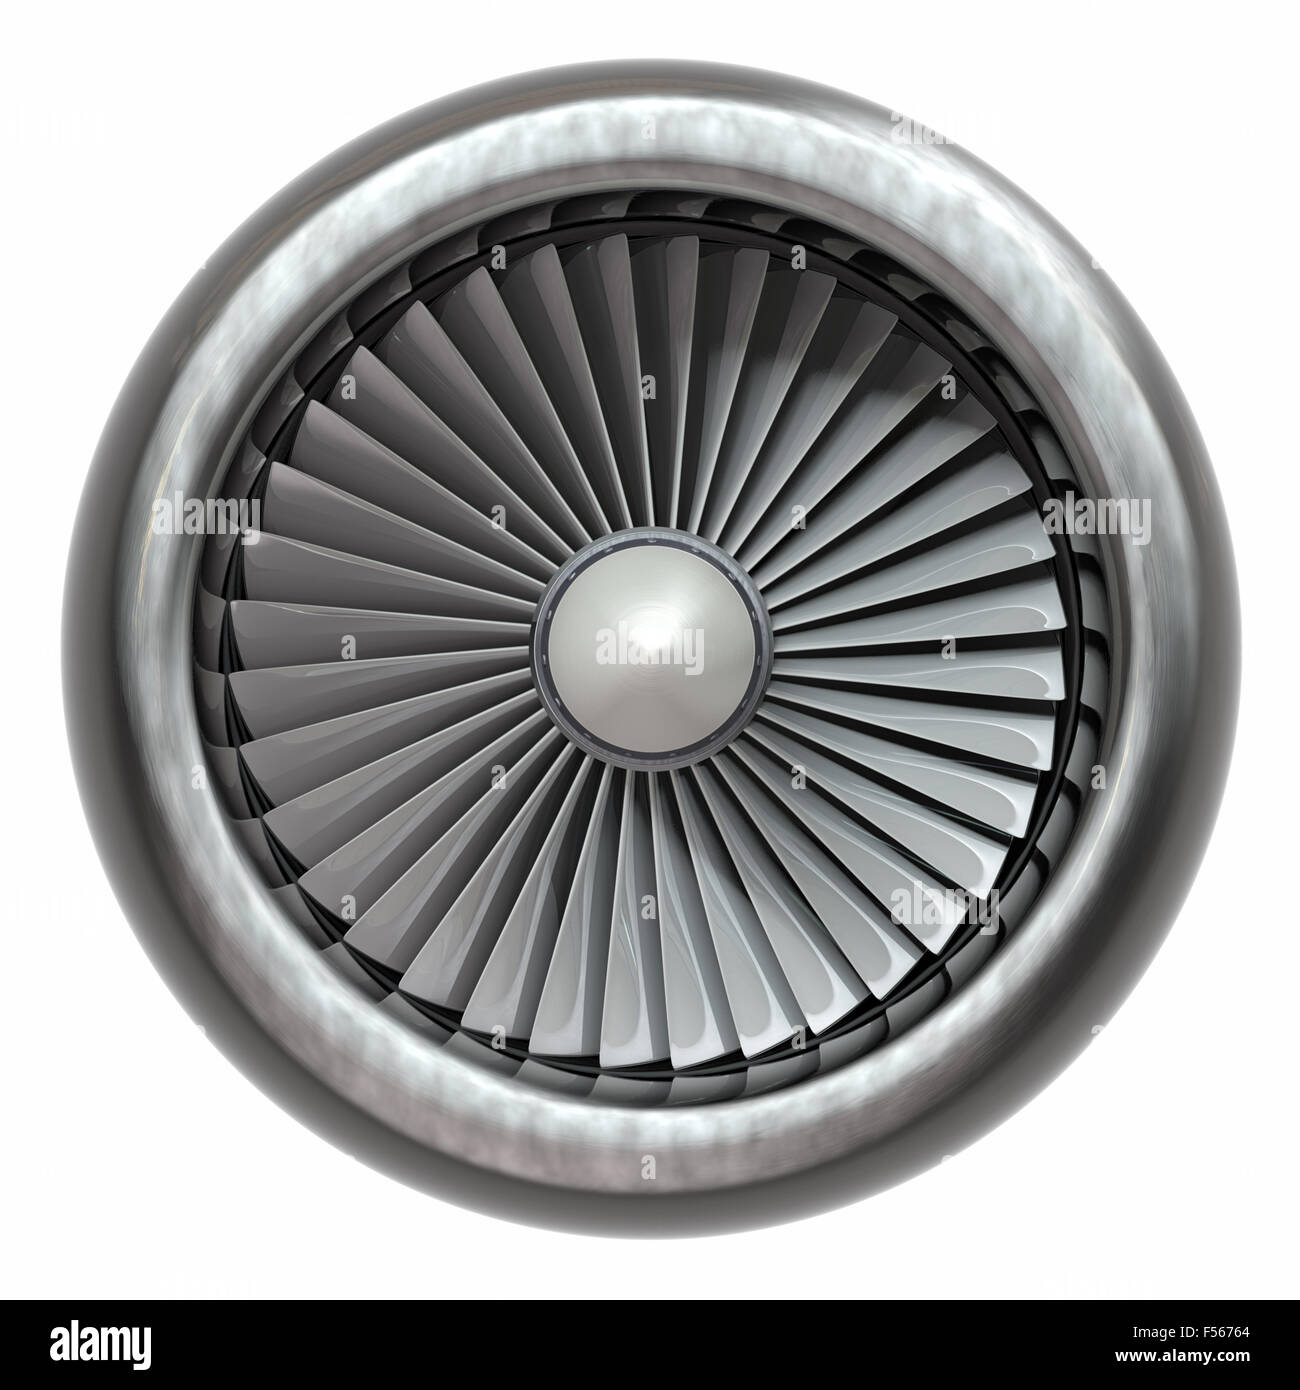 Jet engine, turbine blades of airplane, 3d illustration - Stock Image